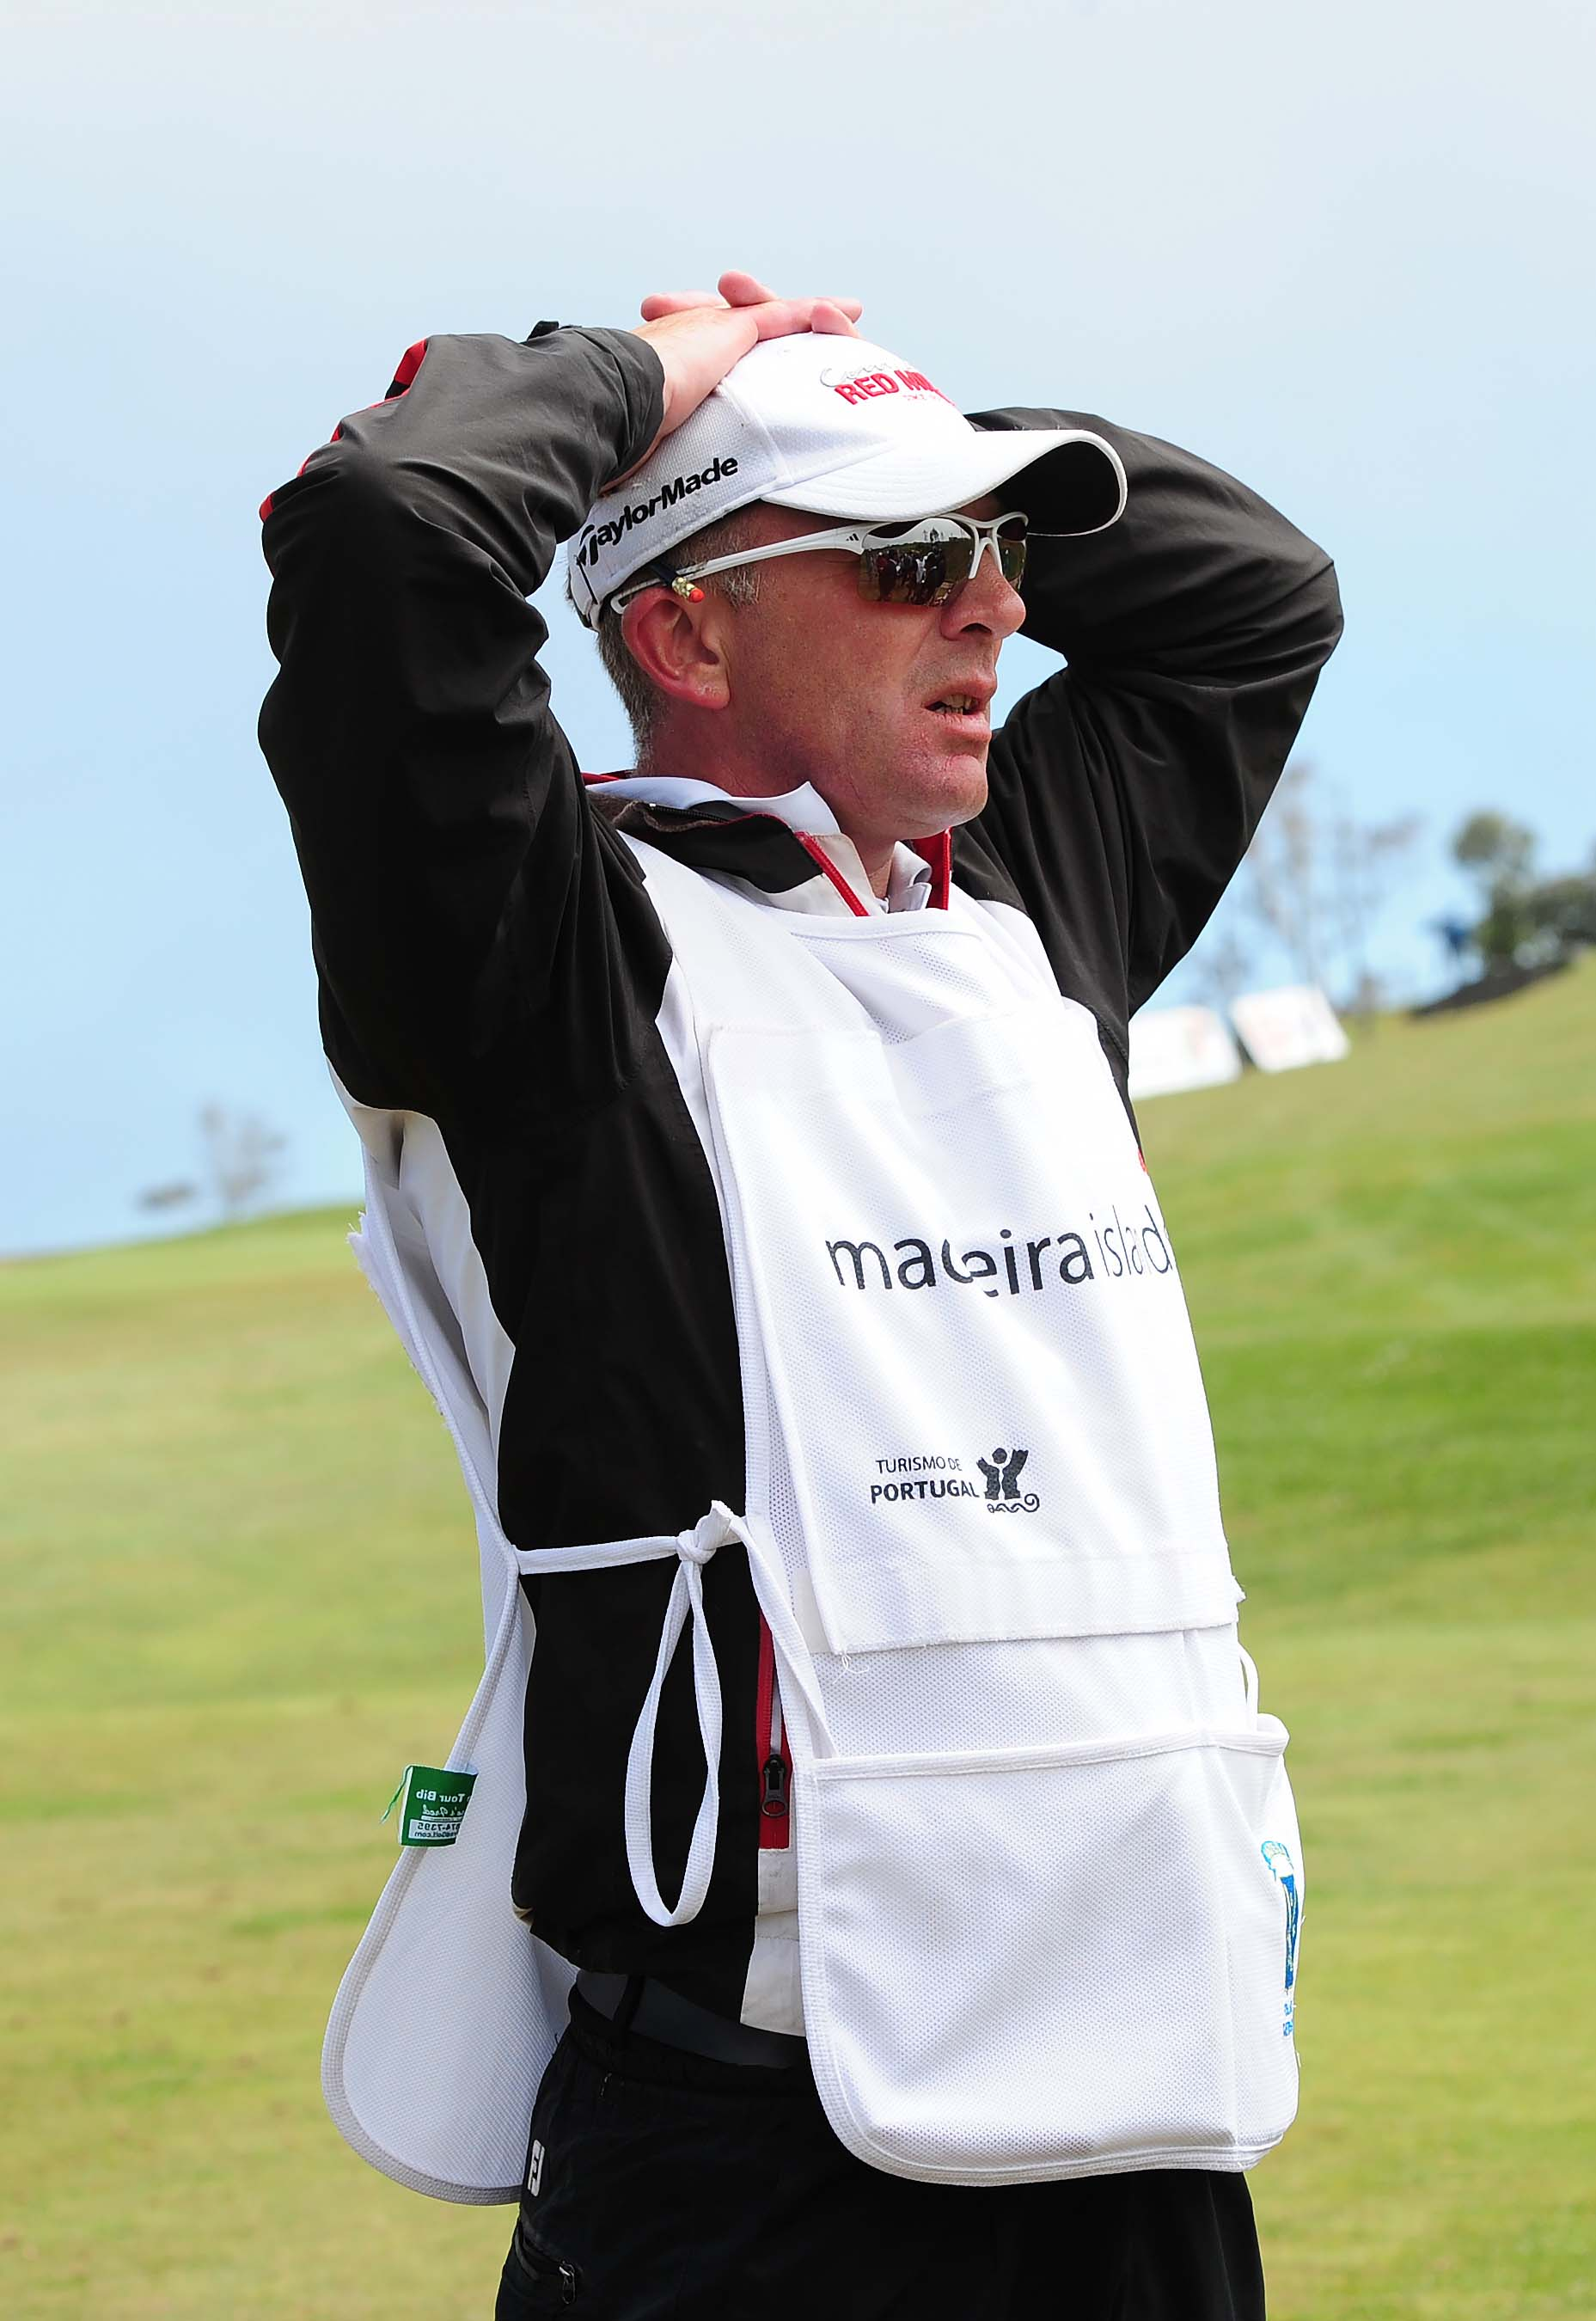 Caddie Ian McGregor dies during tournament